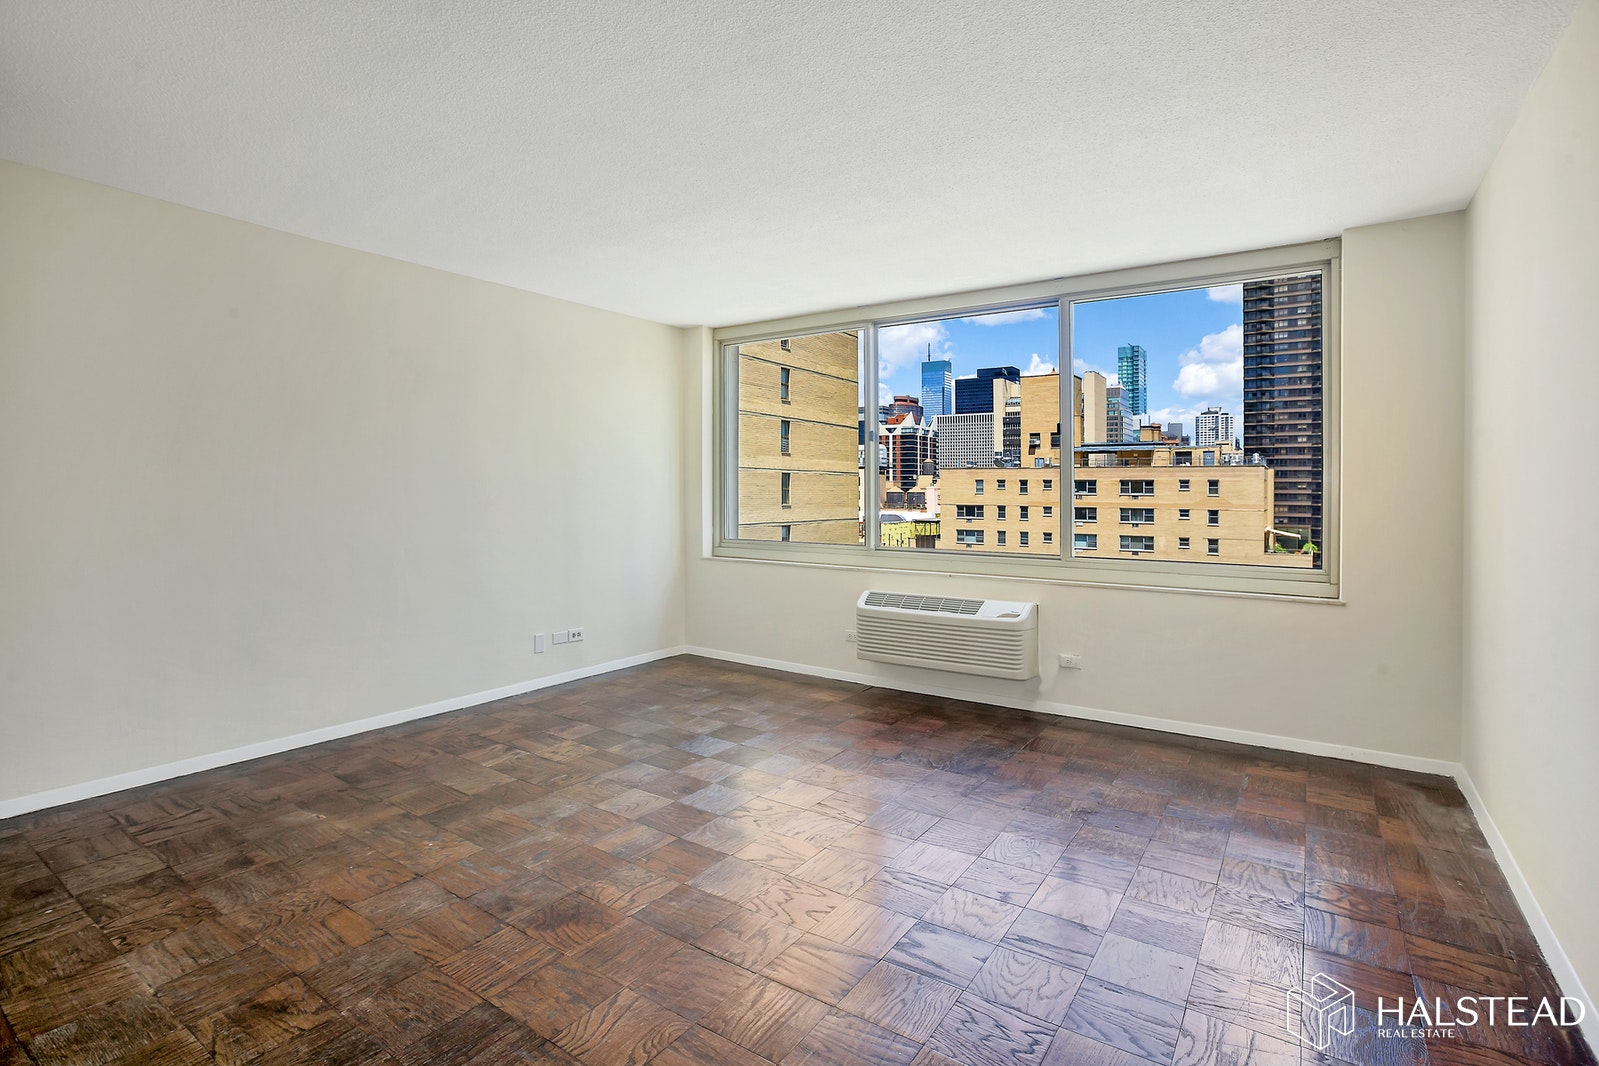 Apartment for sale at 333 East 45th Street, Apt 20D